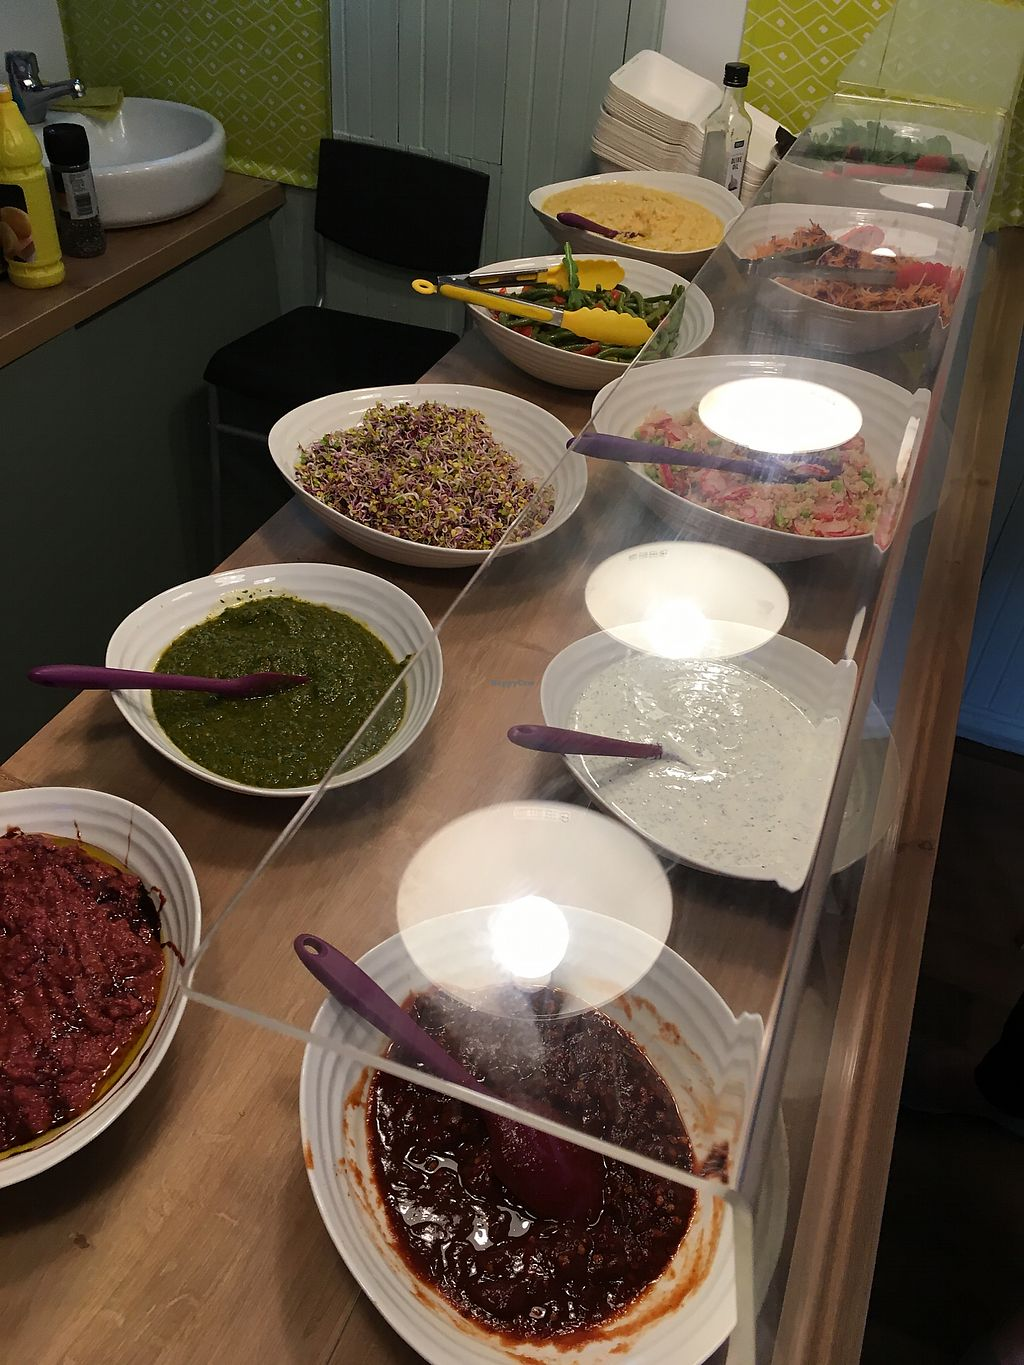 """Photo of The Salad Project  by <a href=""""/members/profile/Spaghetti_monster"""">Spaghetti_monster</a> <br/>Salad counter <br/> July 29, 2017  - <a href='/contact/abuse/image/97345/286082'>Report</a>"""